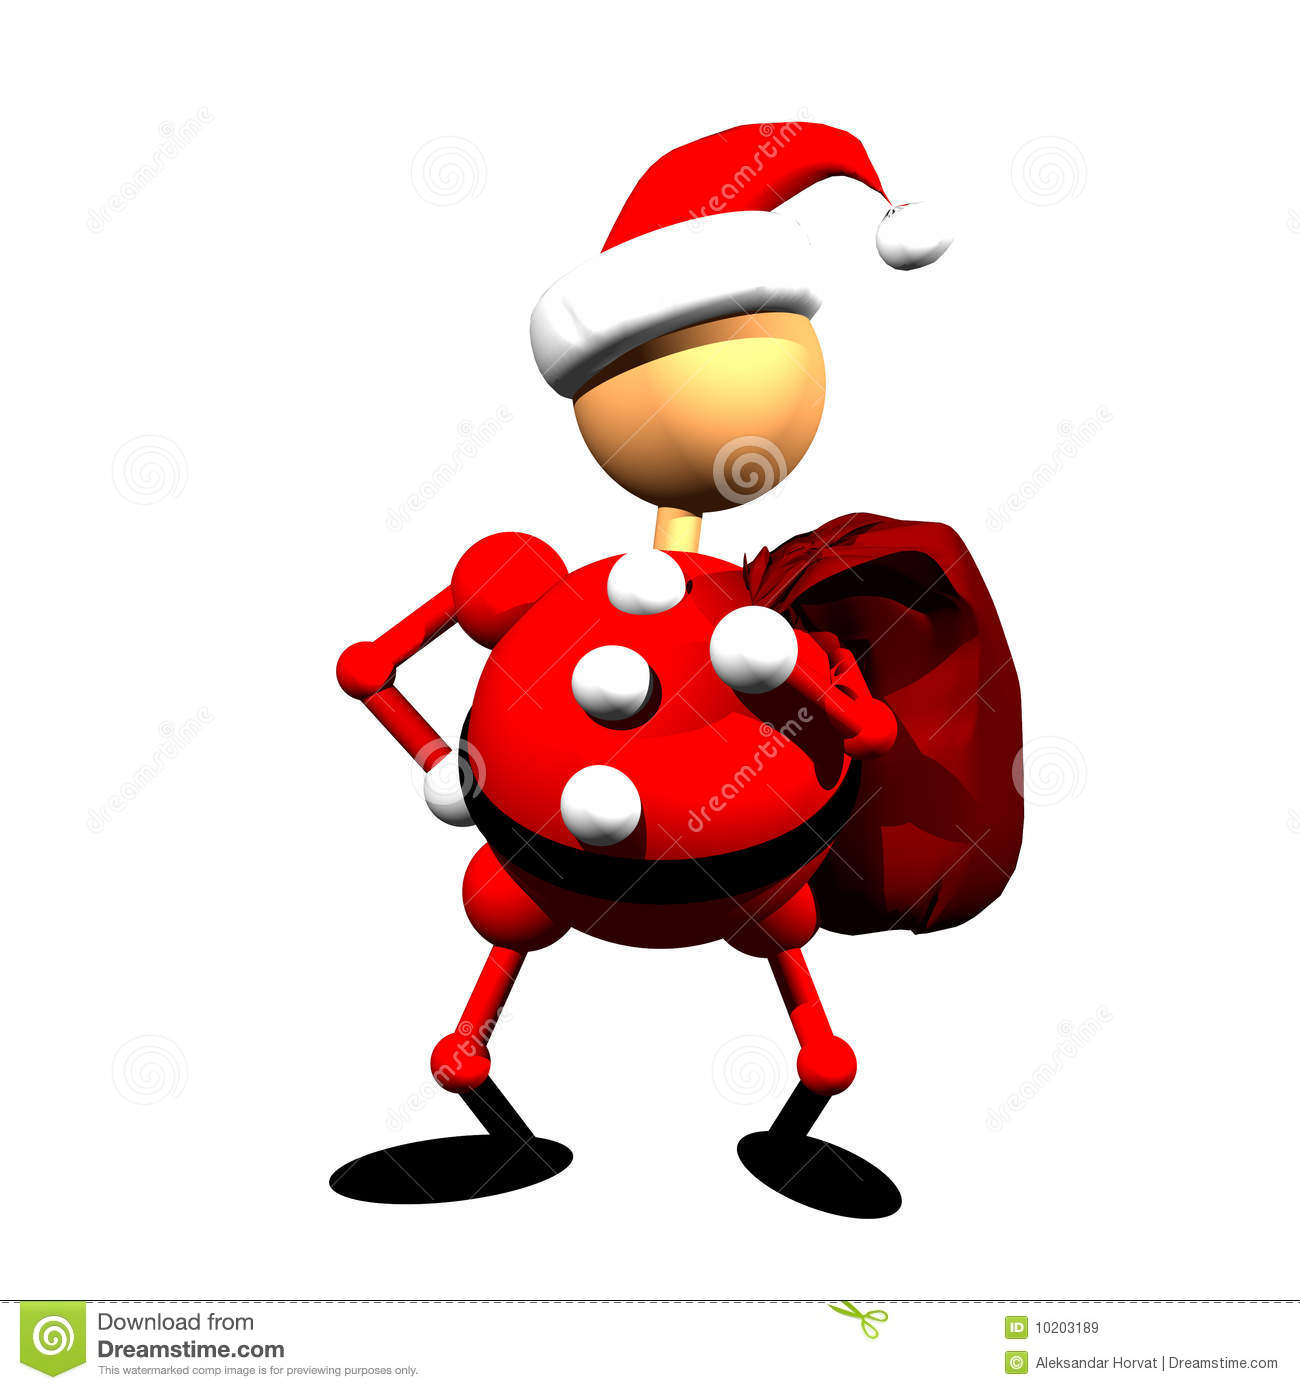 Santa Claus Clipart Royalty Free Stock Images - Image: 10203189